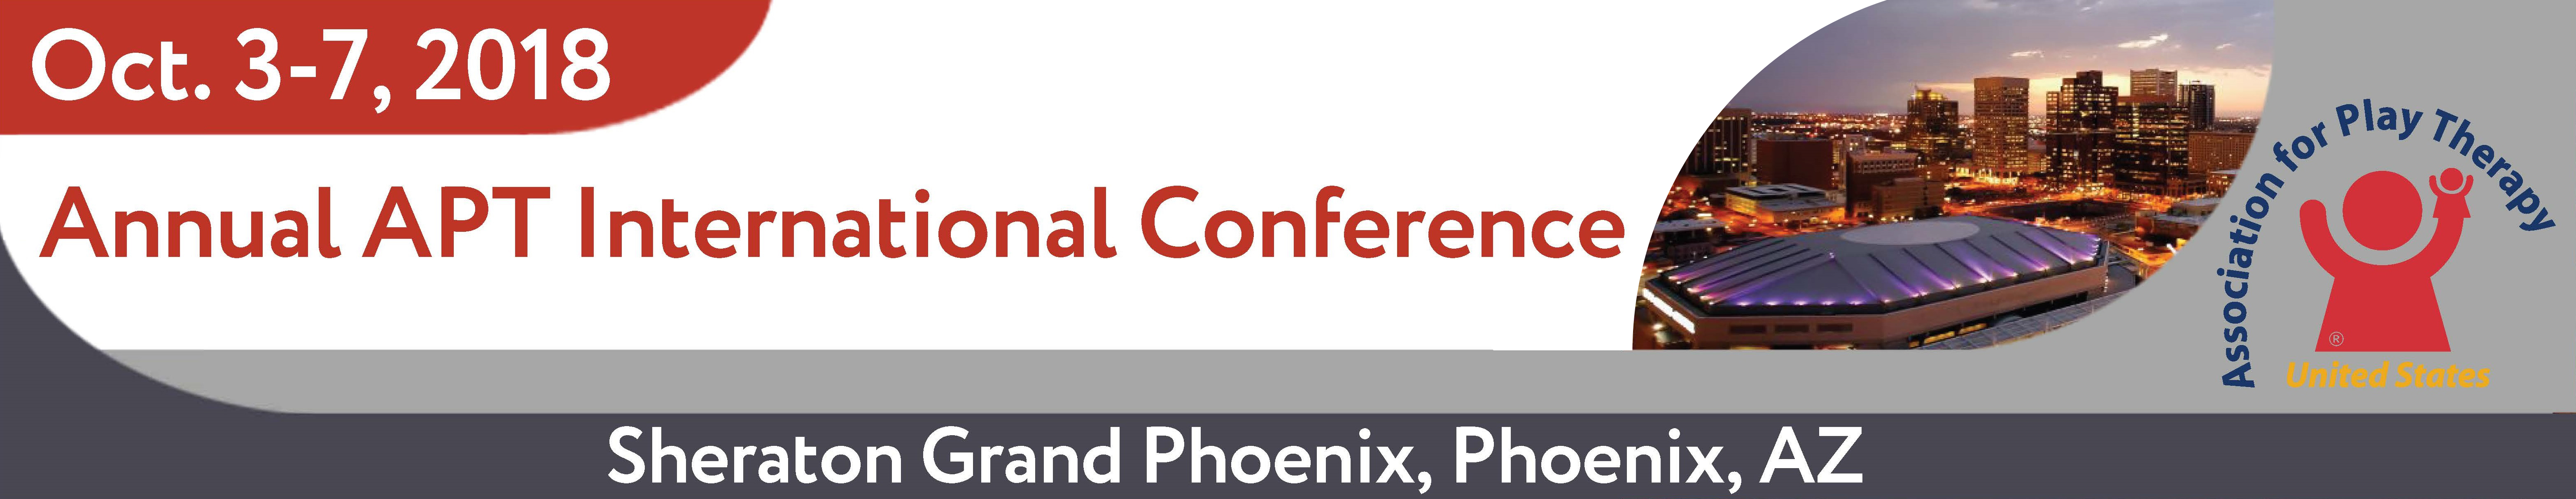 Annual APT International Conference - October 3-7, 2018